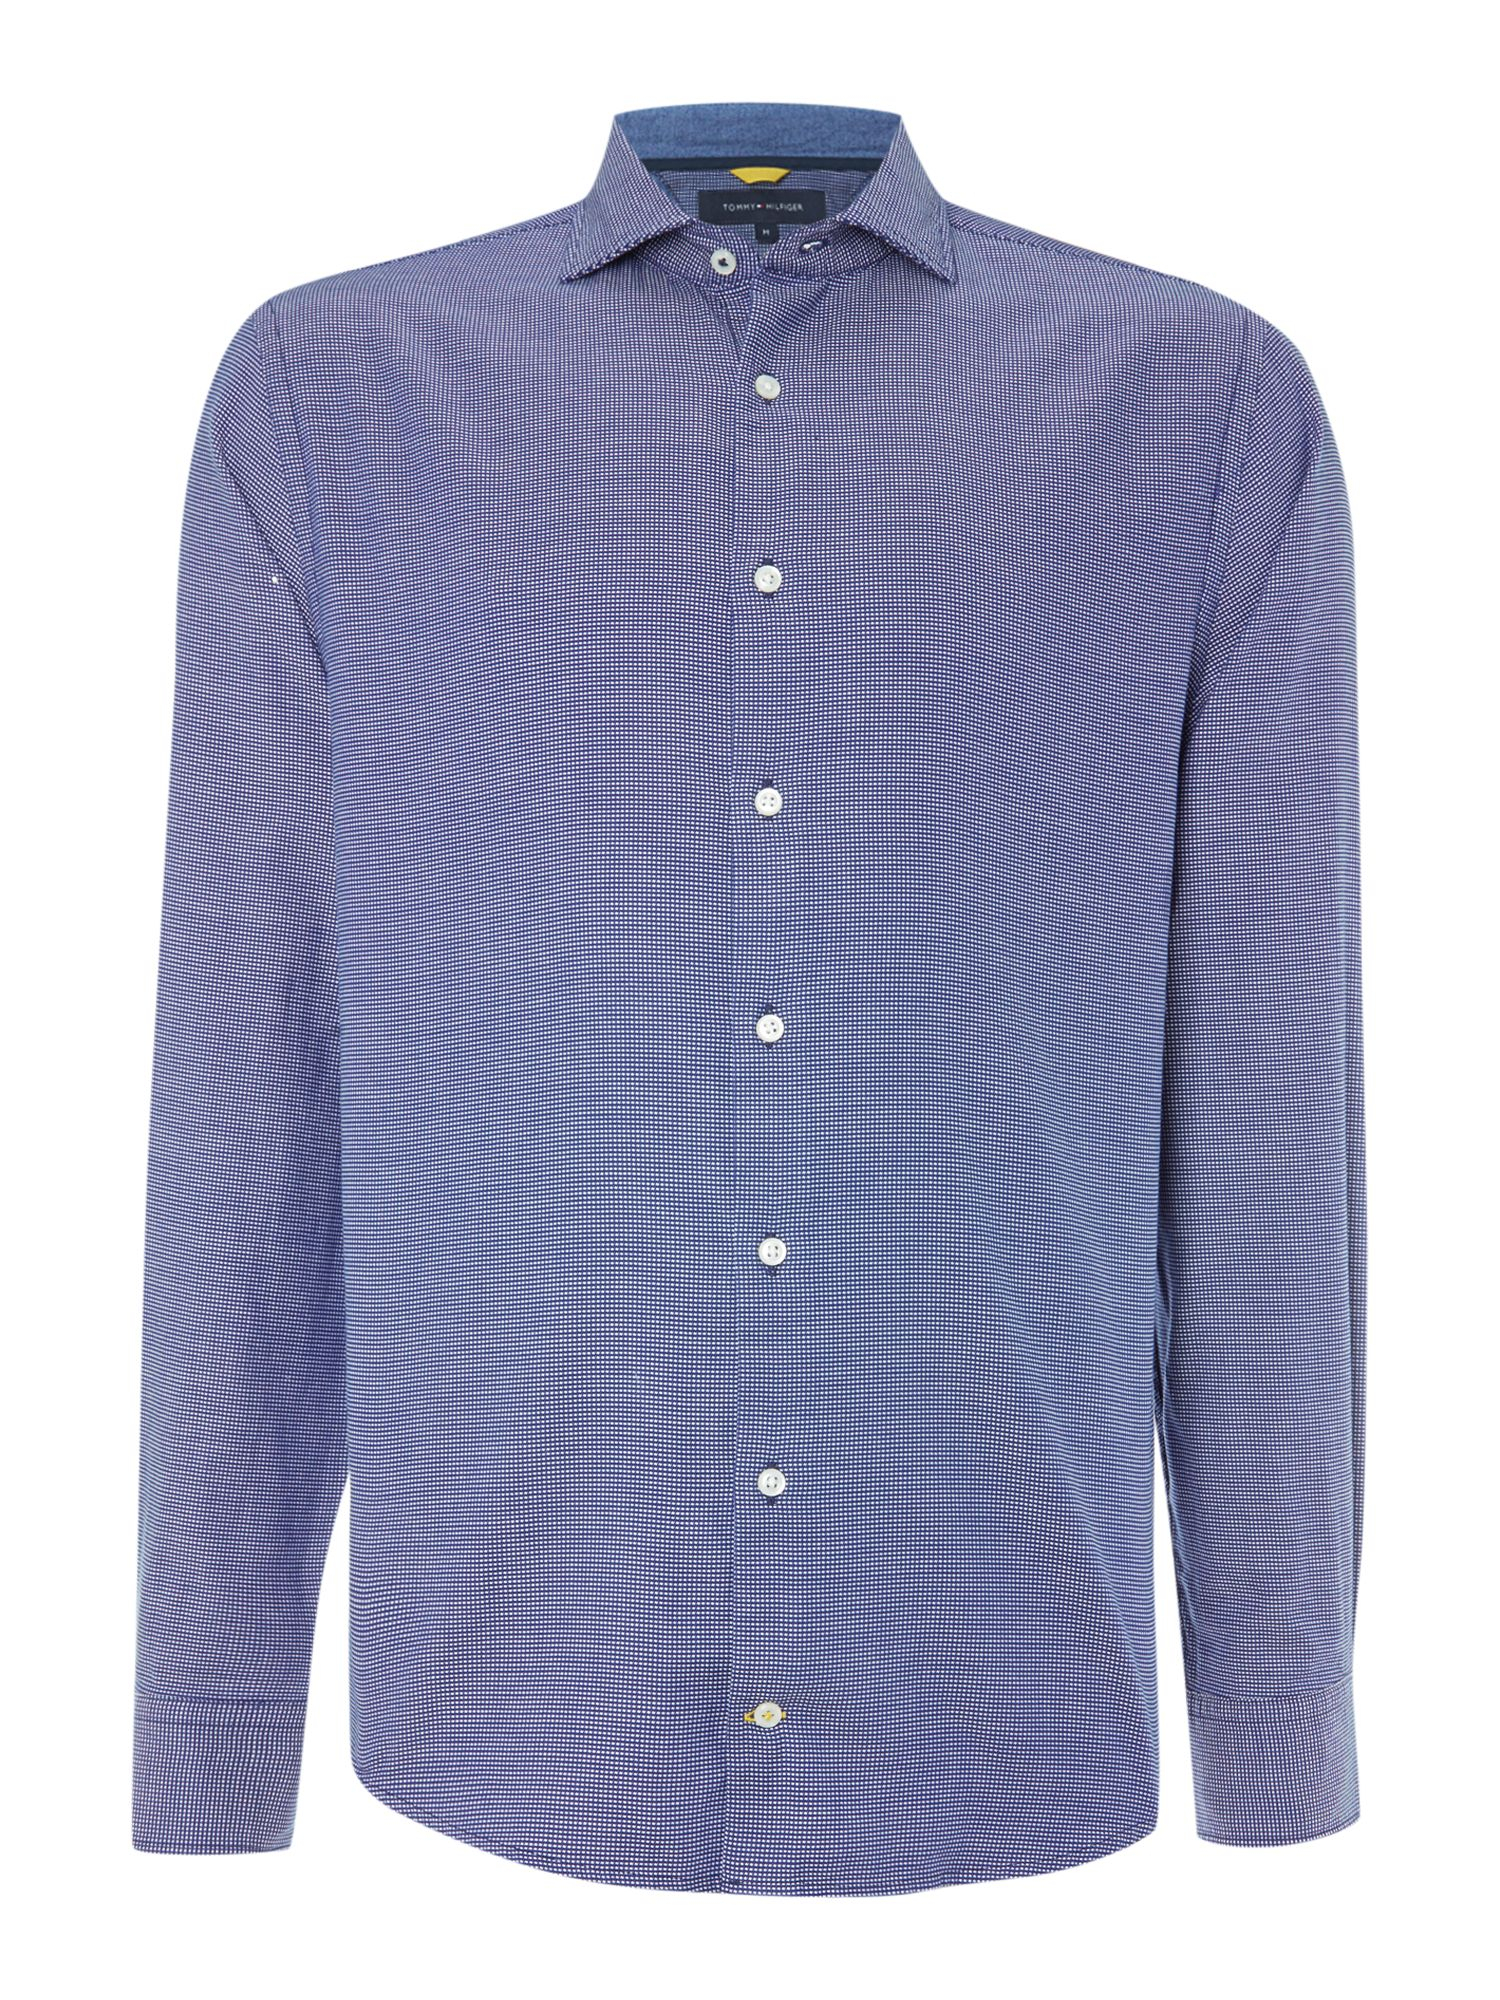 Lyst tommy hilfiger new york check shirt in blue for men for Custom t shirts long island ny